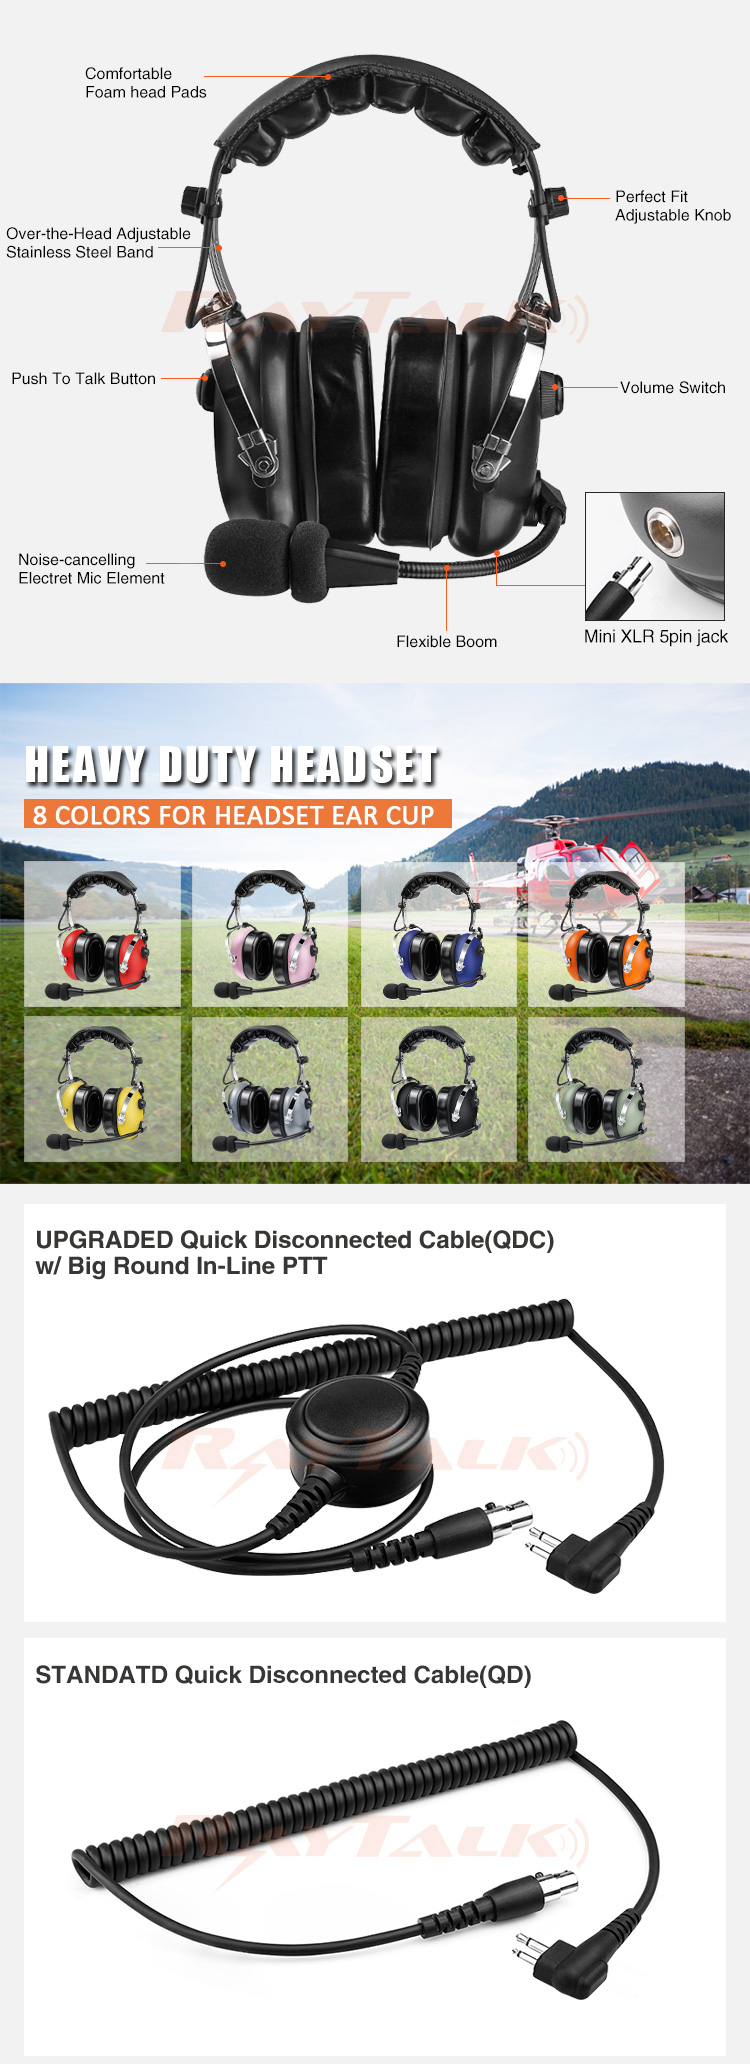 RayTalk Over The Head high Noise Cancelling double muff two way radio headset RAN-1000A